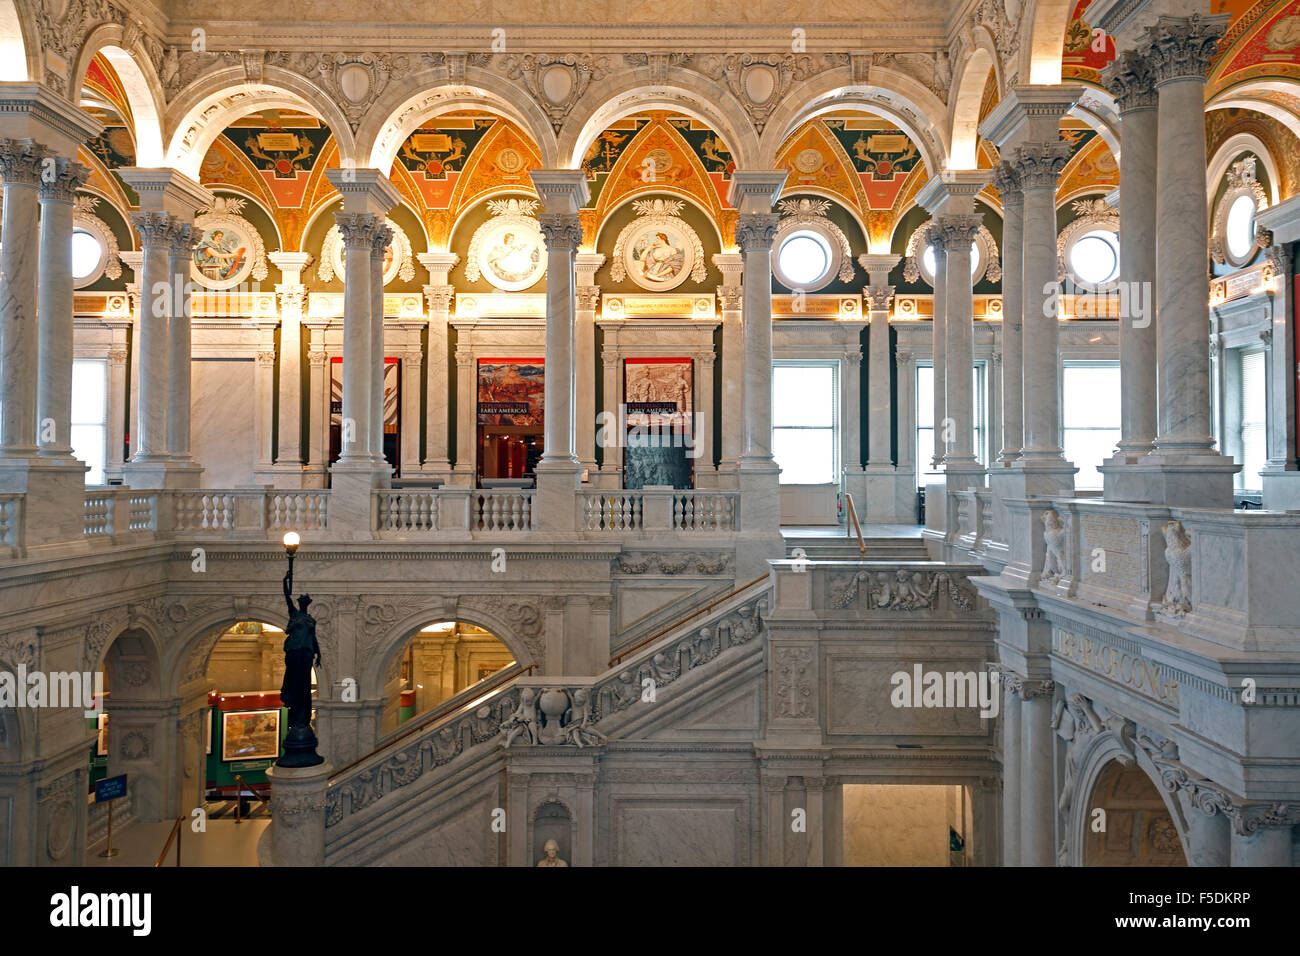 Interior, Biblioteca del Congreso, Washington, Distrito de Columbia, EE.UU. Imagen De Stock